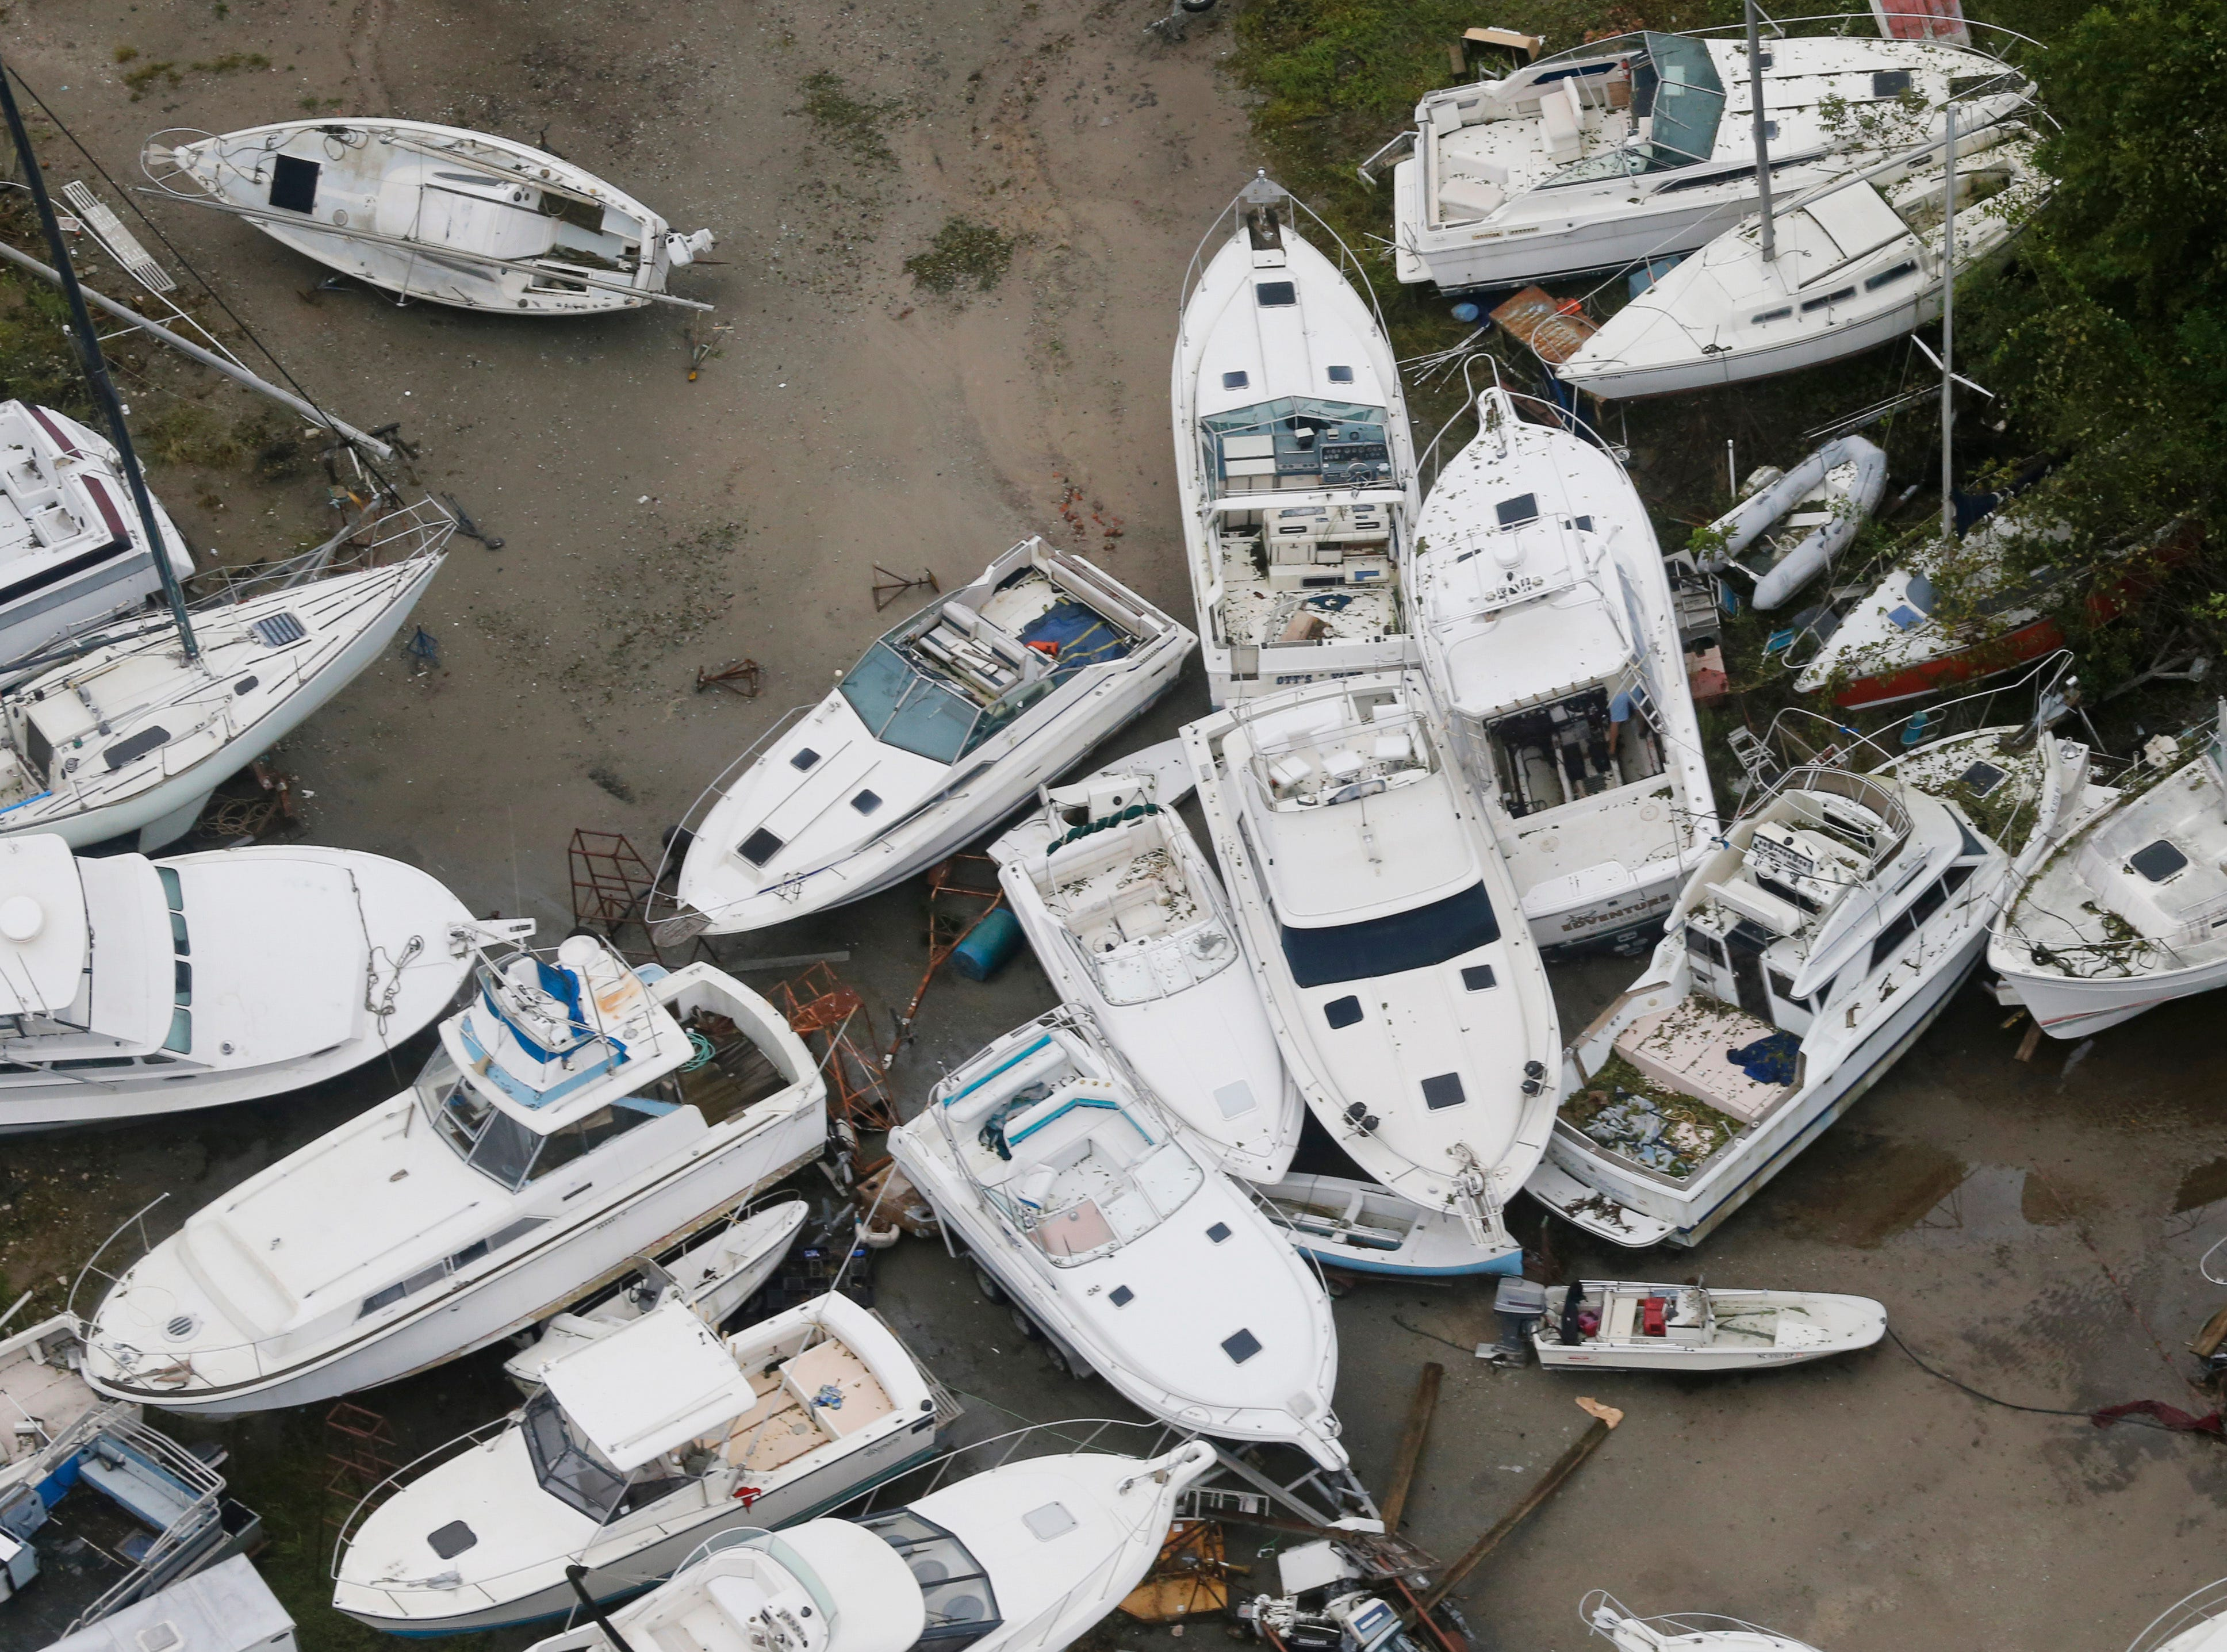 Boats are stacked up in a marina in New Bern, NC., Saturday, Sept. 15, 2018.